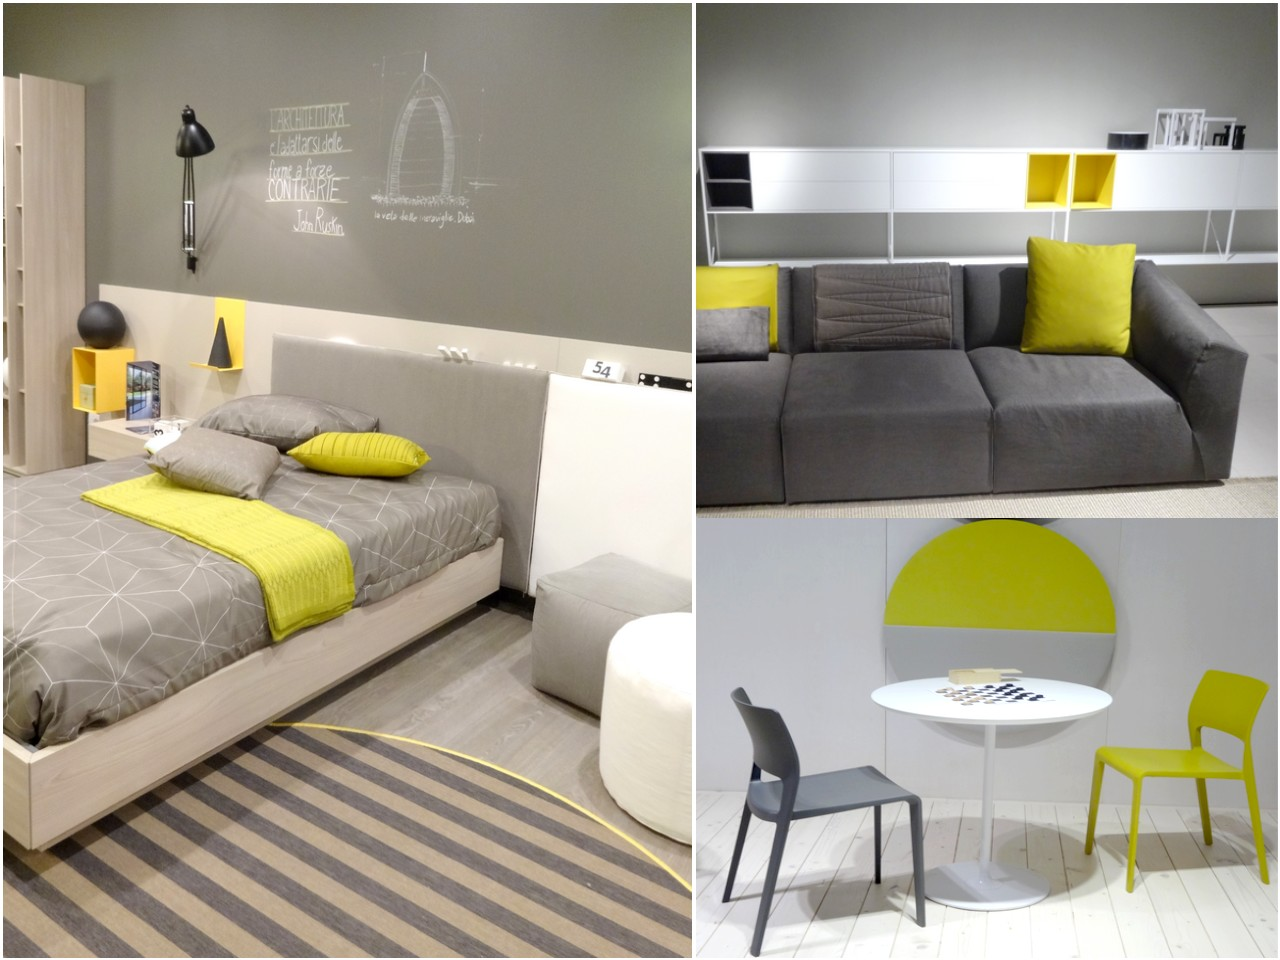 Tendencias decoraci n 2015 2016 mil n siempre sorprende for Tendencia en decoracion 2016